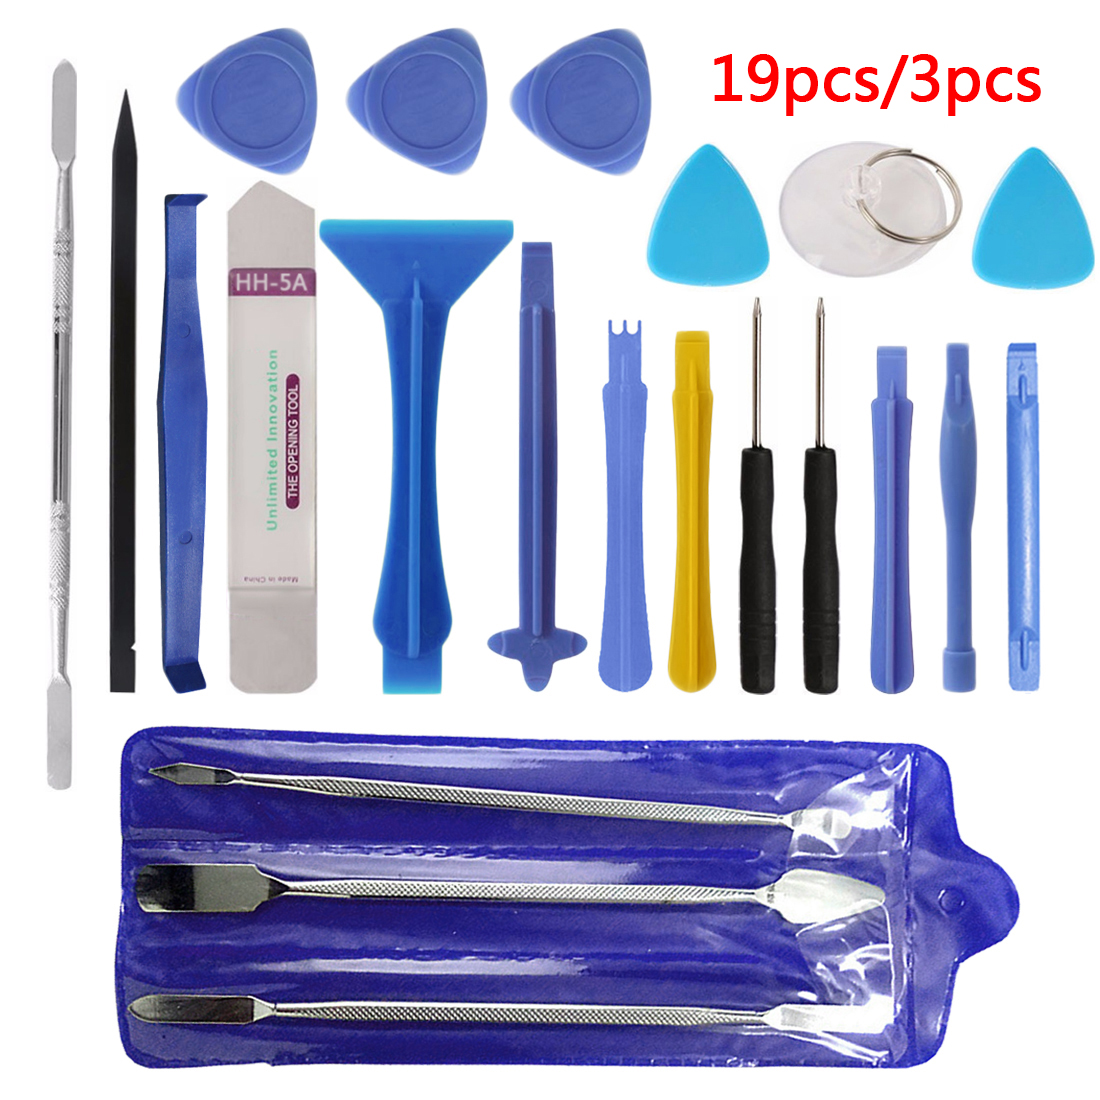 Repair Tool Kit Opening Tool Metal Pry Bar Smartphone Screen Disassemble Tools for iPhone Tablet PC Repair Tool HOT 3pcs/19pcsRepair Tool Kit Opening Tool Metal Pry Bar Smartphone Screen Disassemble Tools for iPhone Tablet PC Repair Tool HOT 3pcs/19pcs